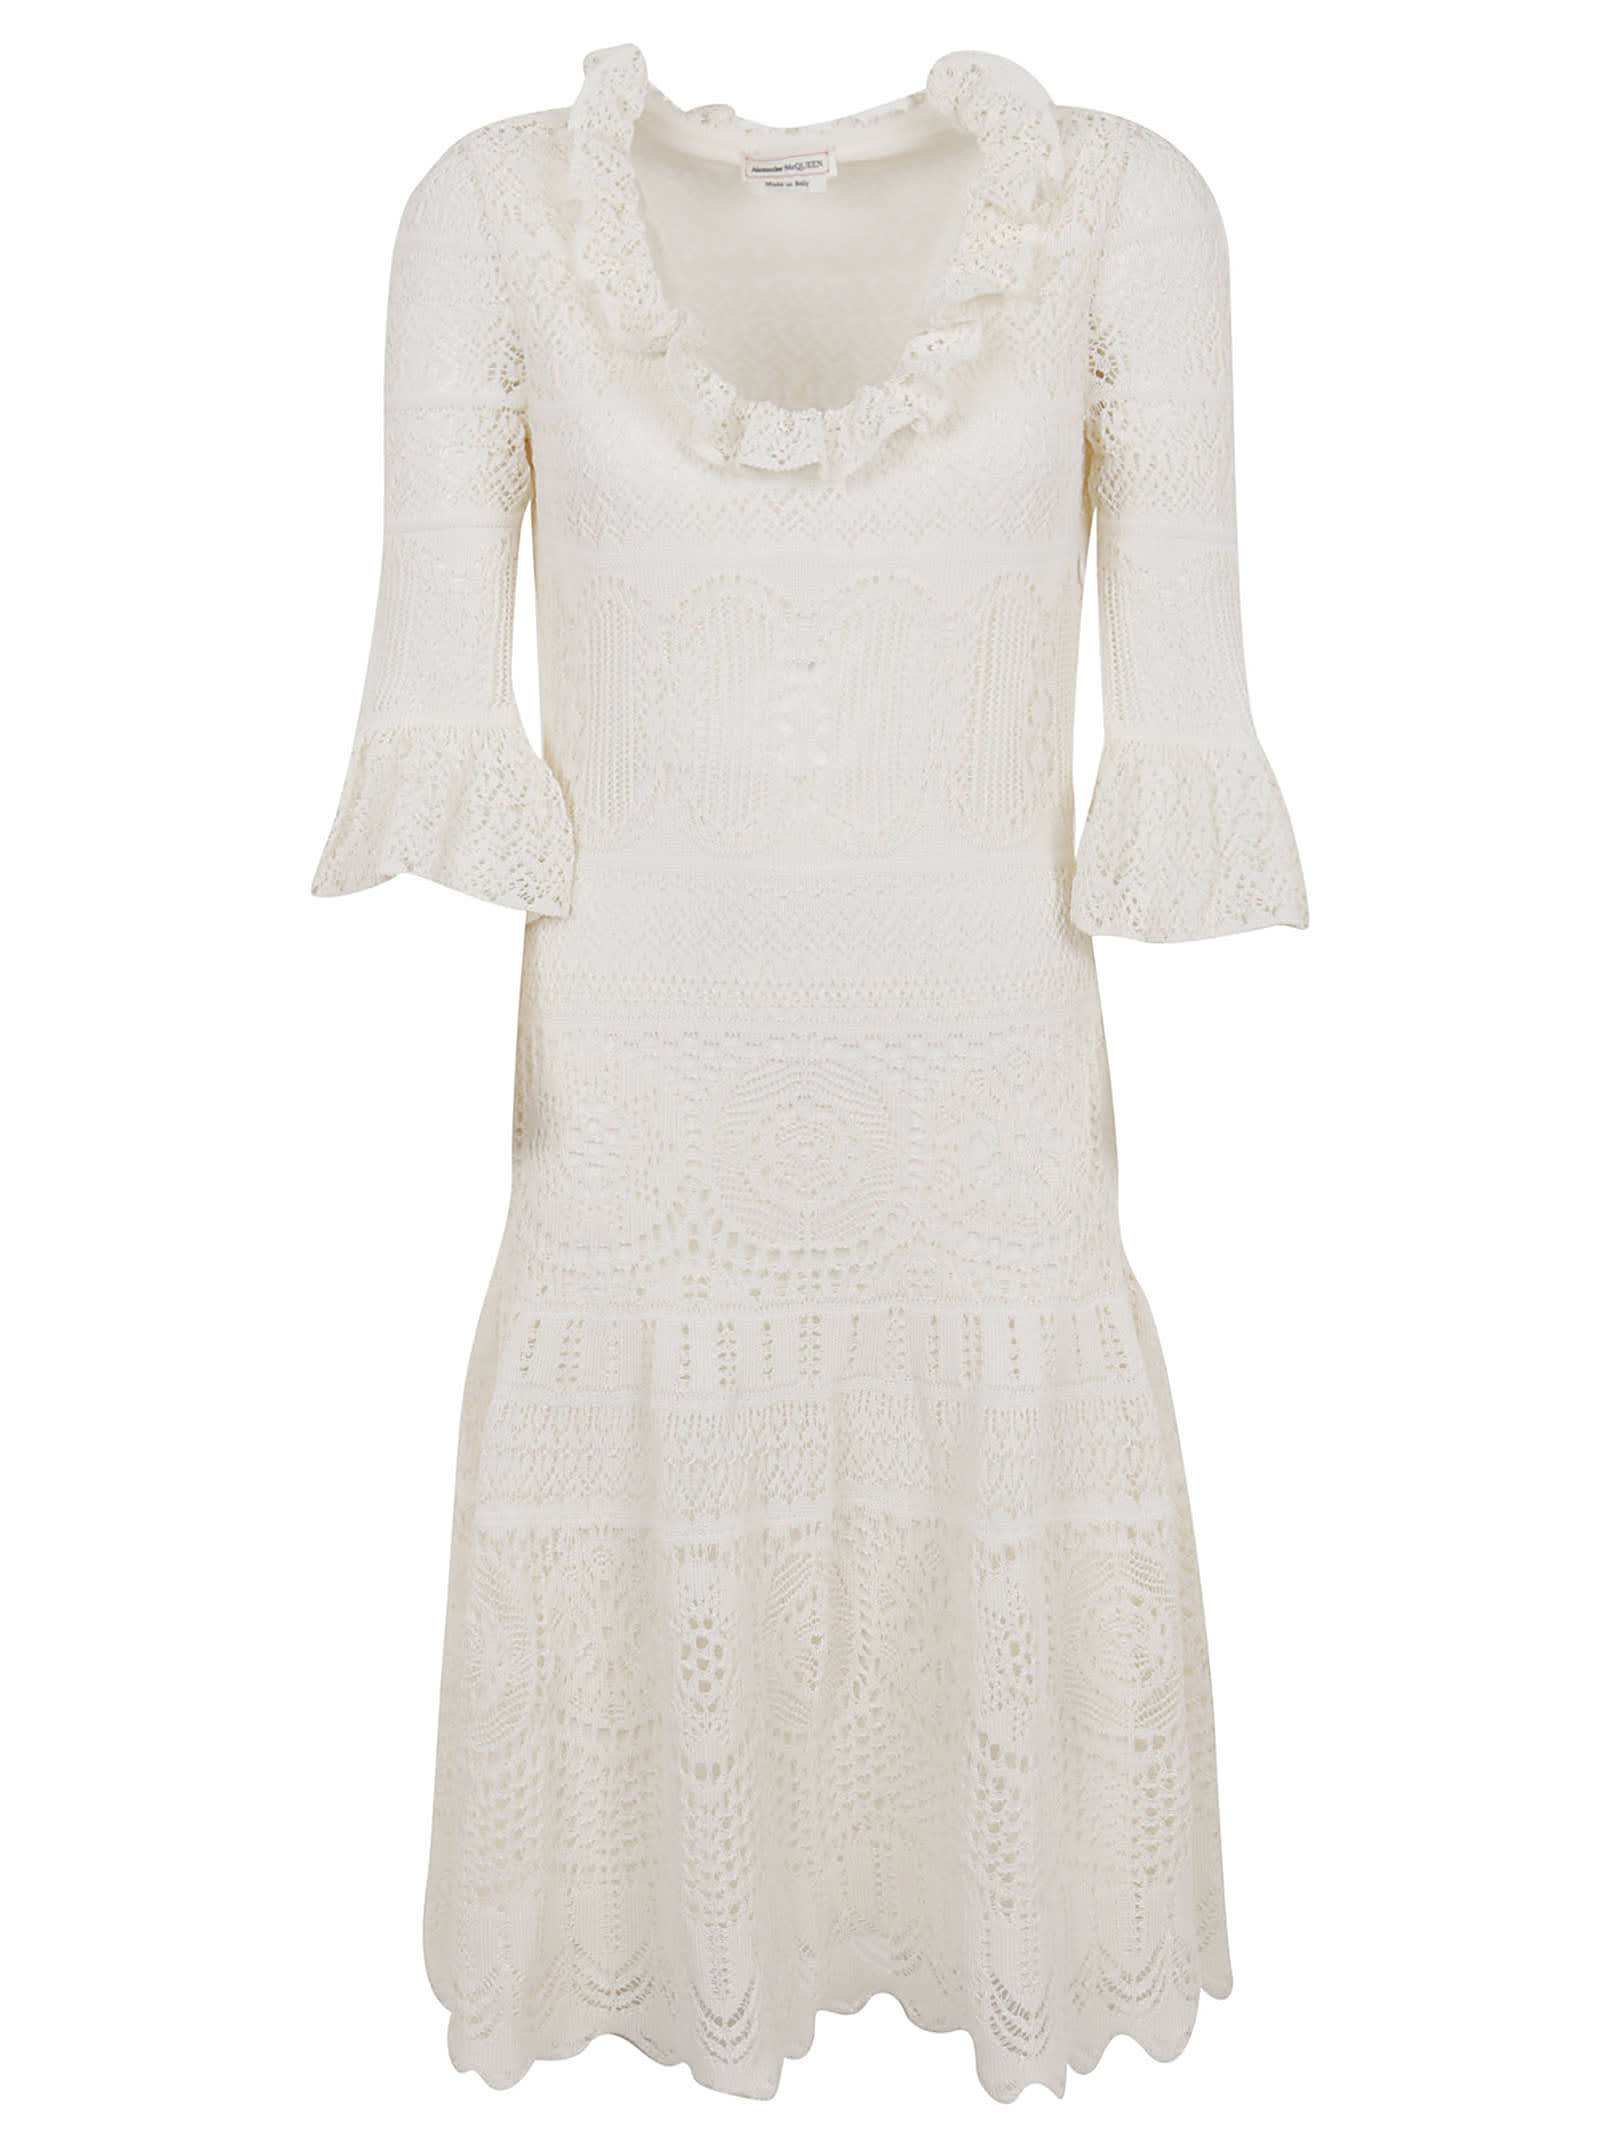 Buy Alexander McQueen Engineered Lace Knitted Dress online, shop Alexander McQueen with free shipping